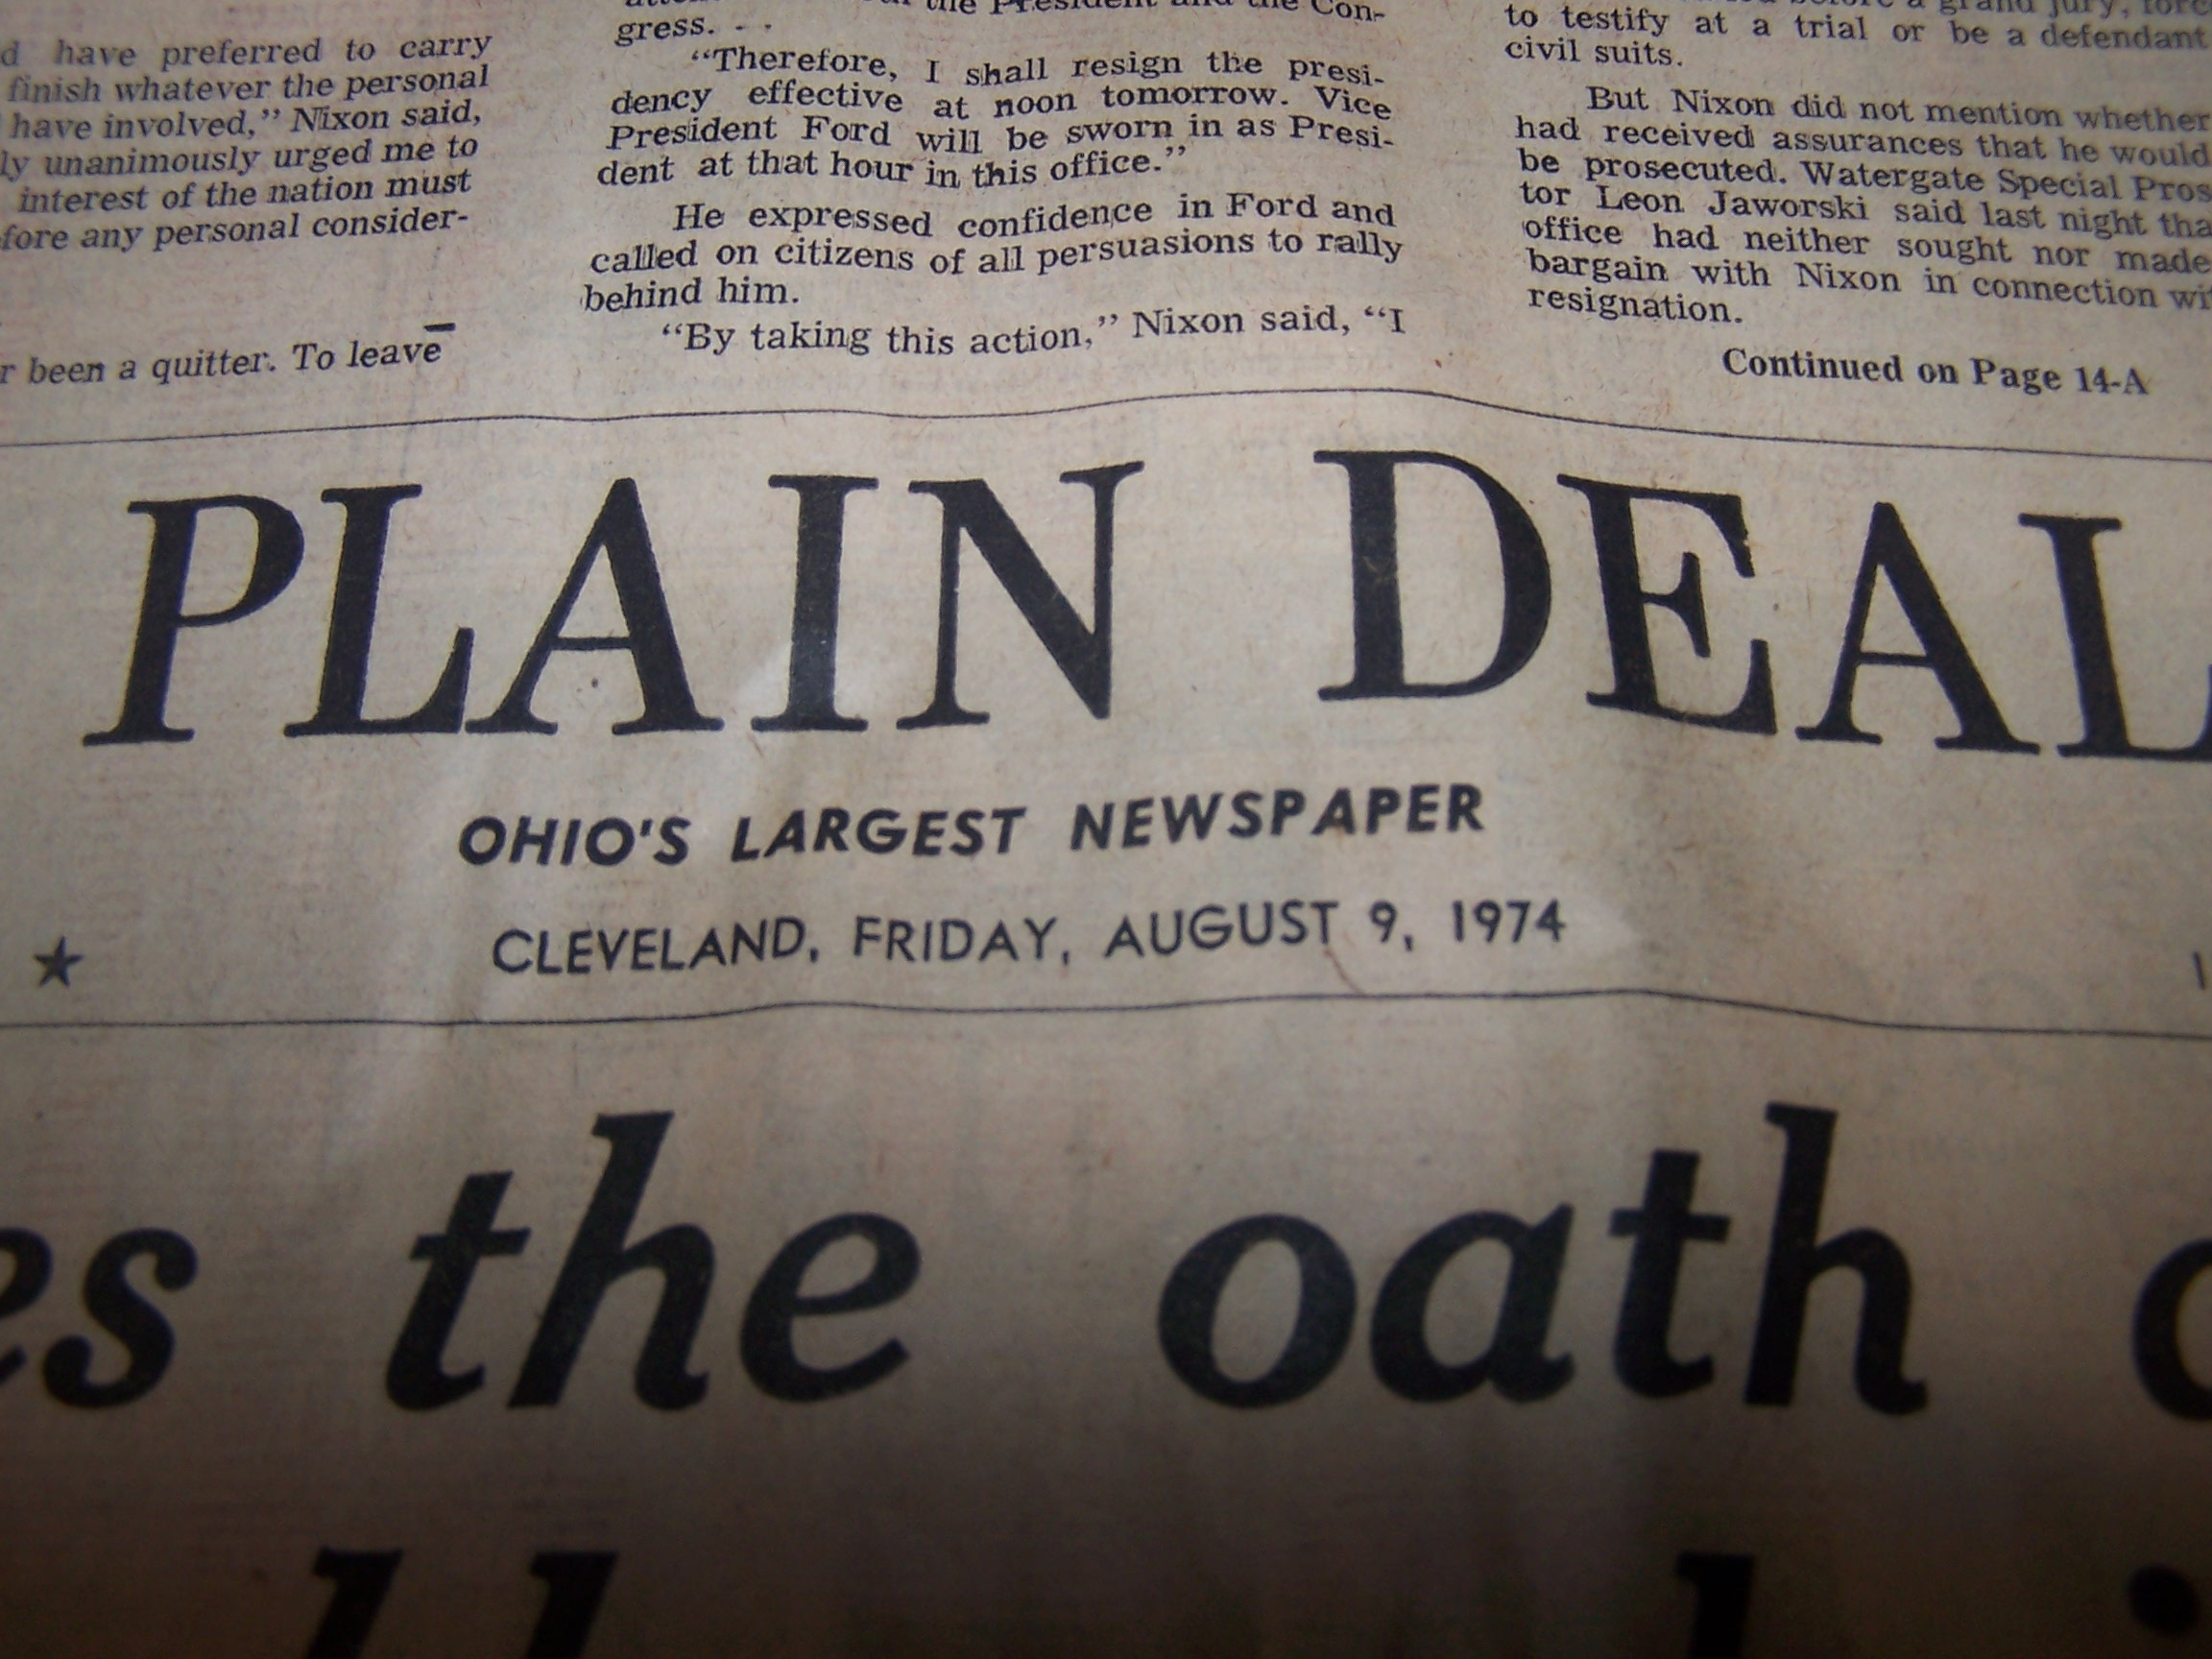 Image 2 of Nixon Resigns, Ford Takes Oath, 1974 Cleveland Plain Dealer